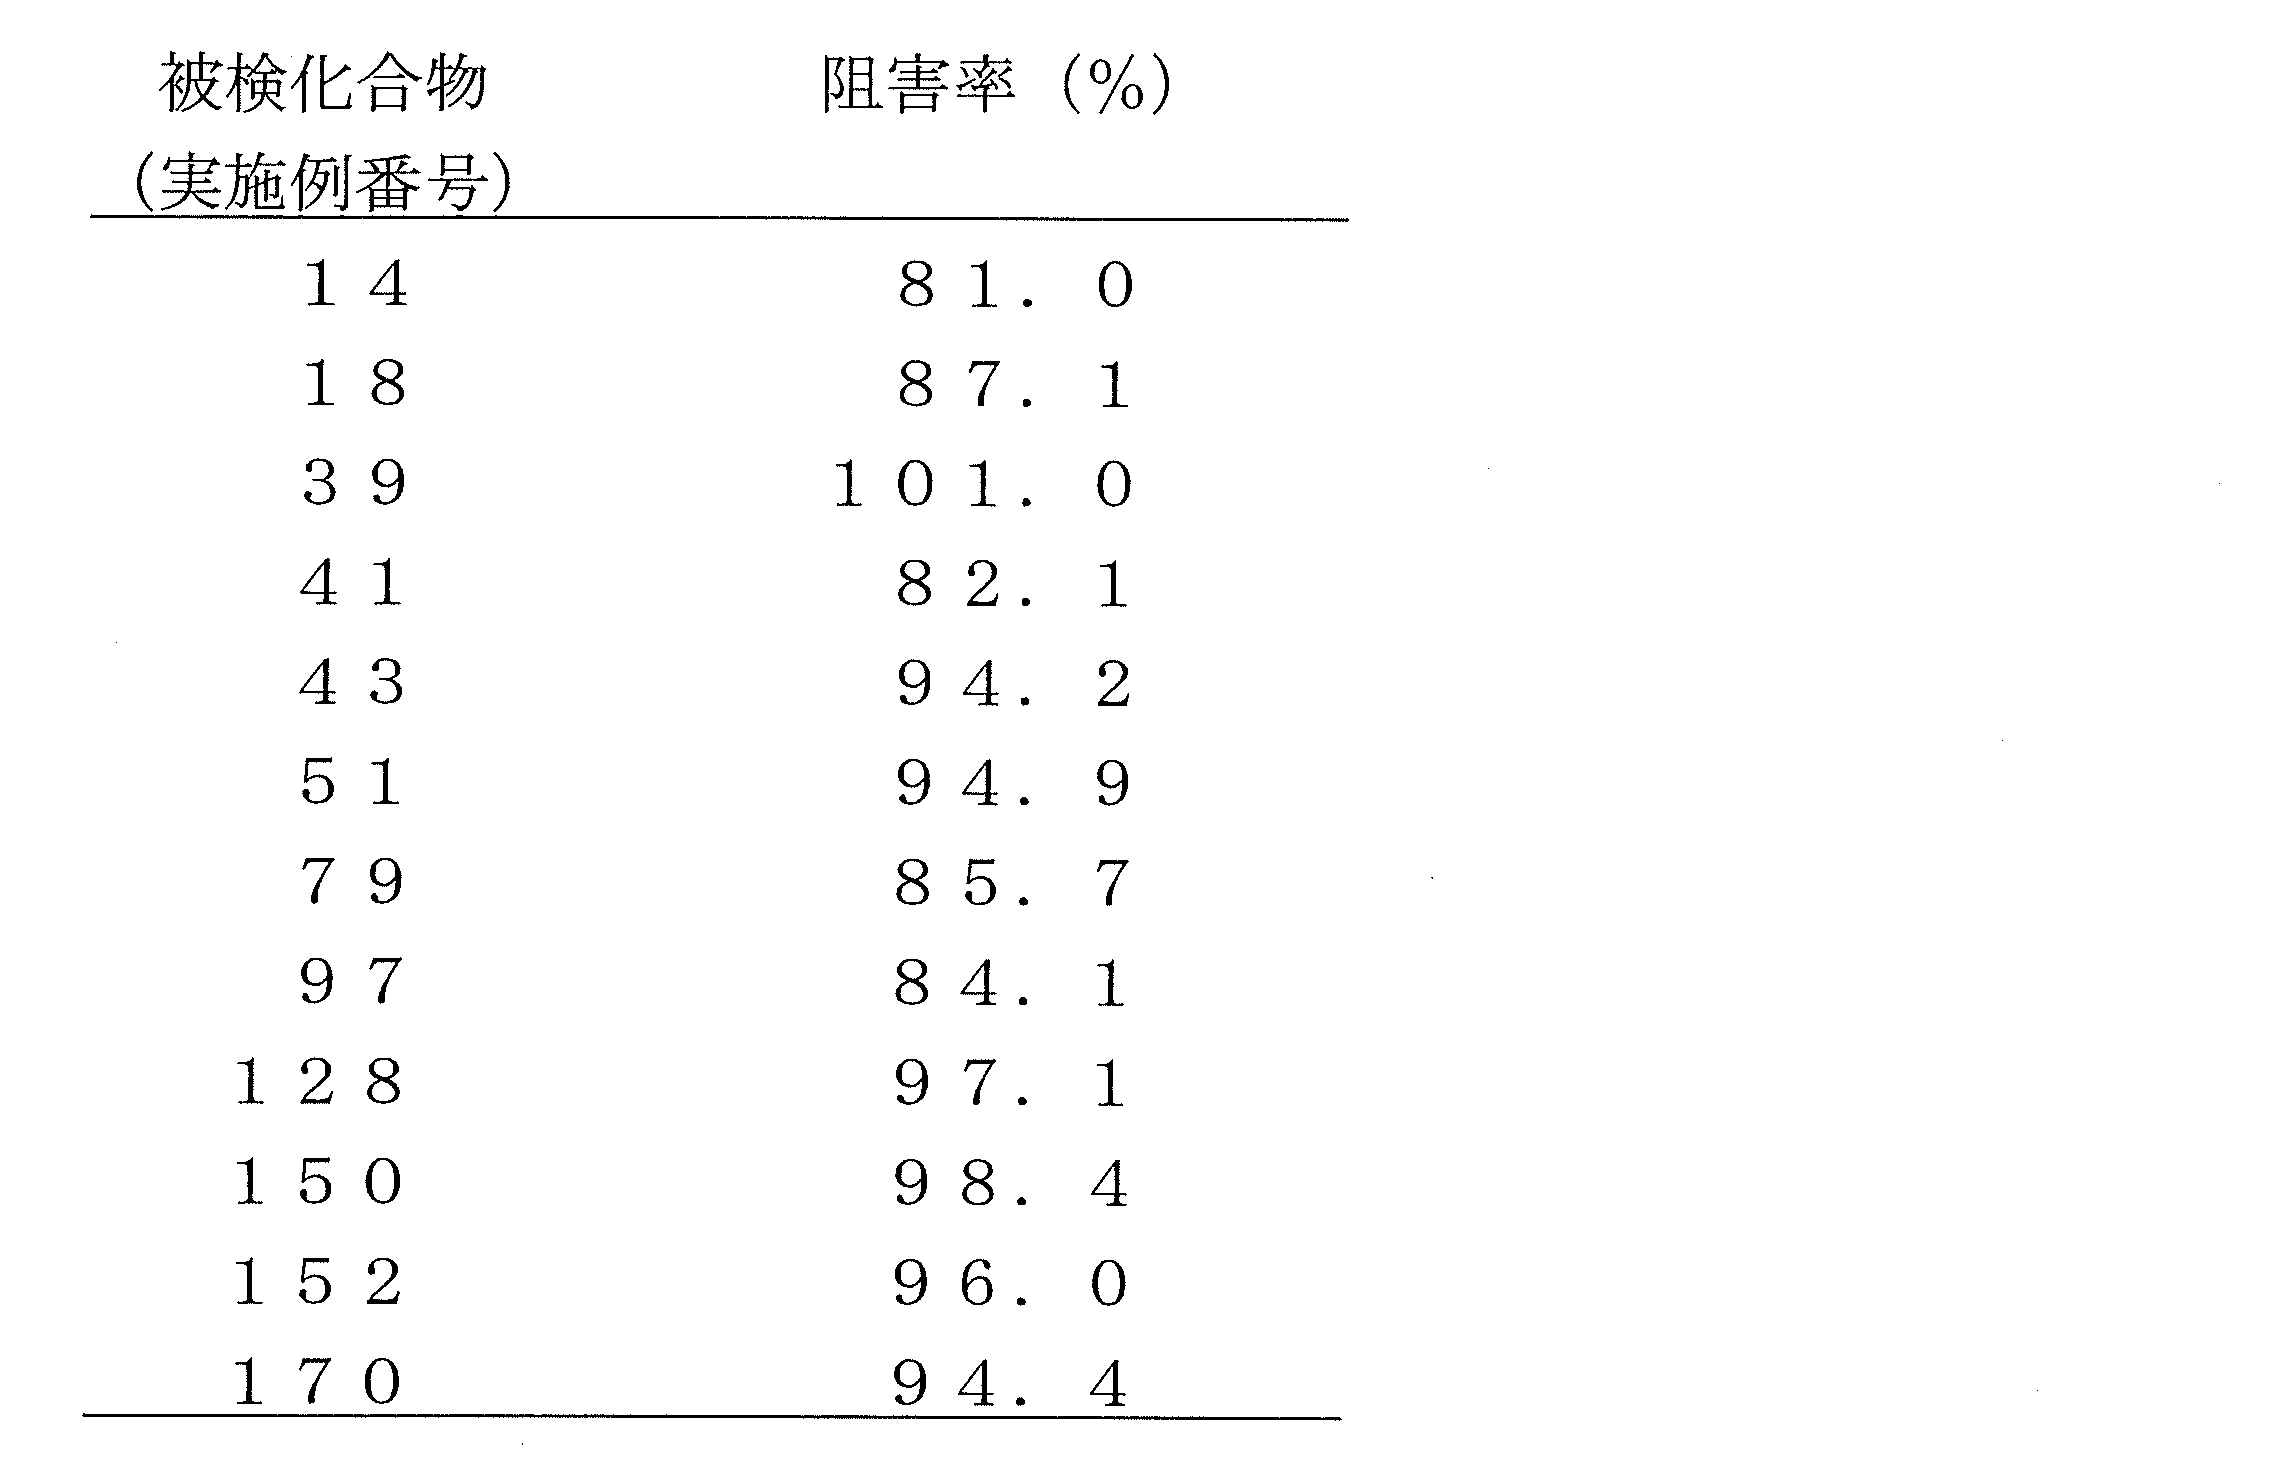 Patents                                                                                                                         Generate link with comments                           複素環化合物